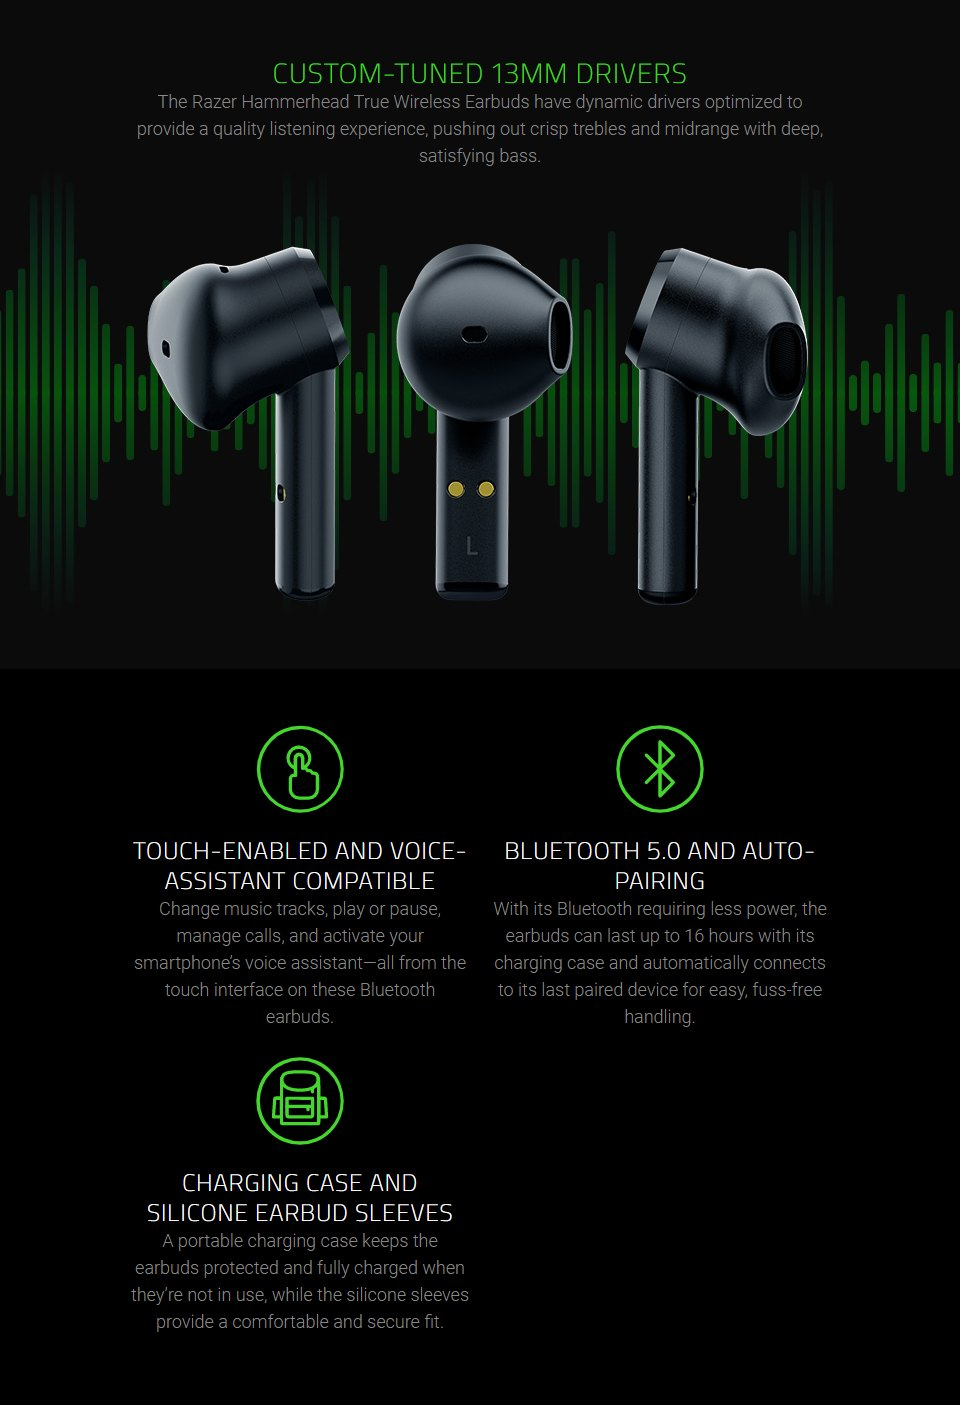 Razer Hammerhead Wireless In-Ear Headphones features 2